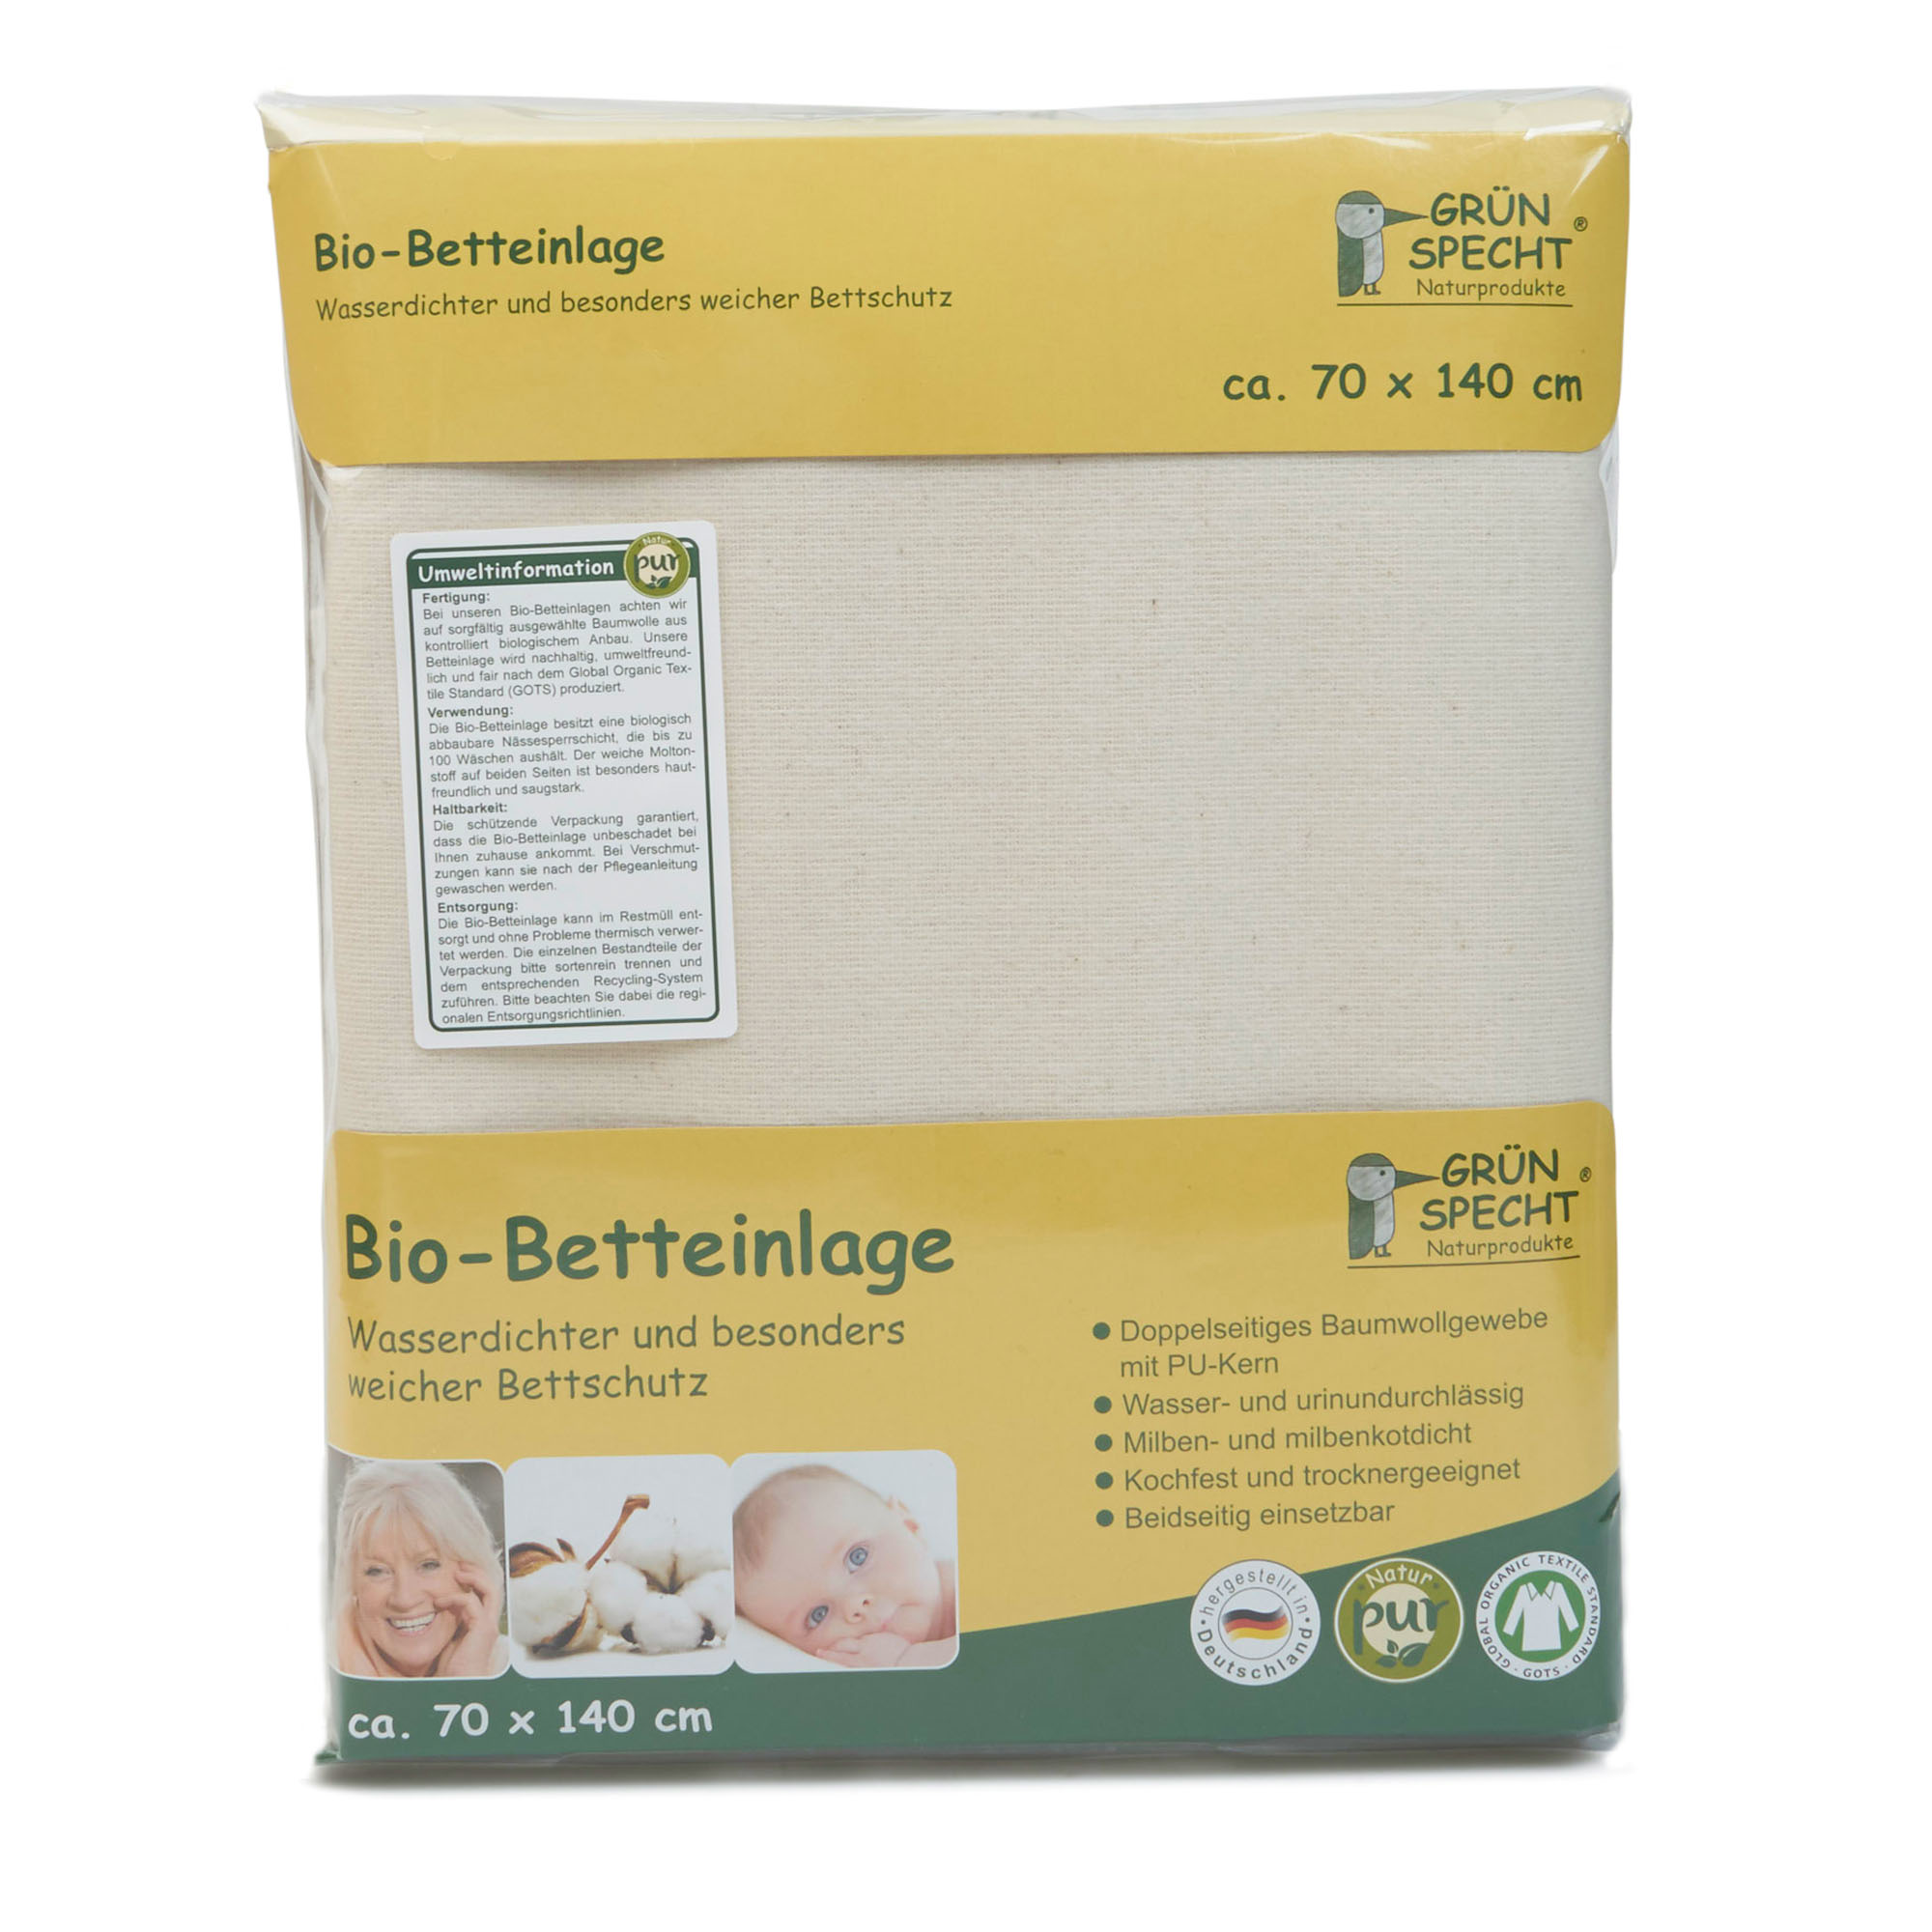 Grünspecht Bio Betteinlage Littlegreenie